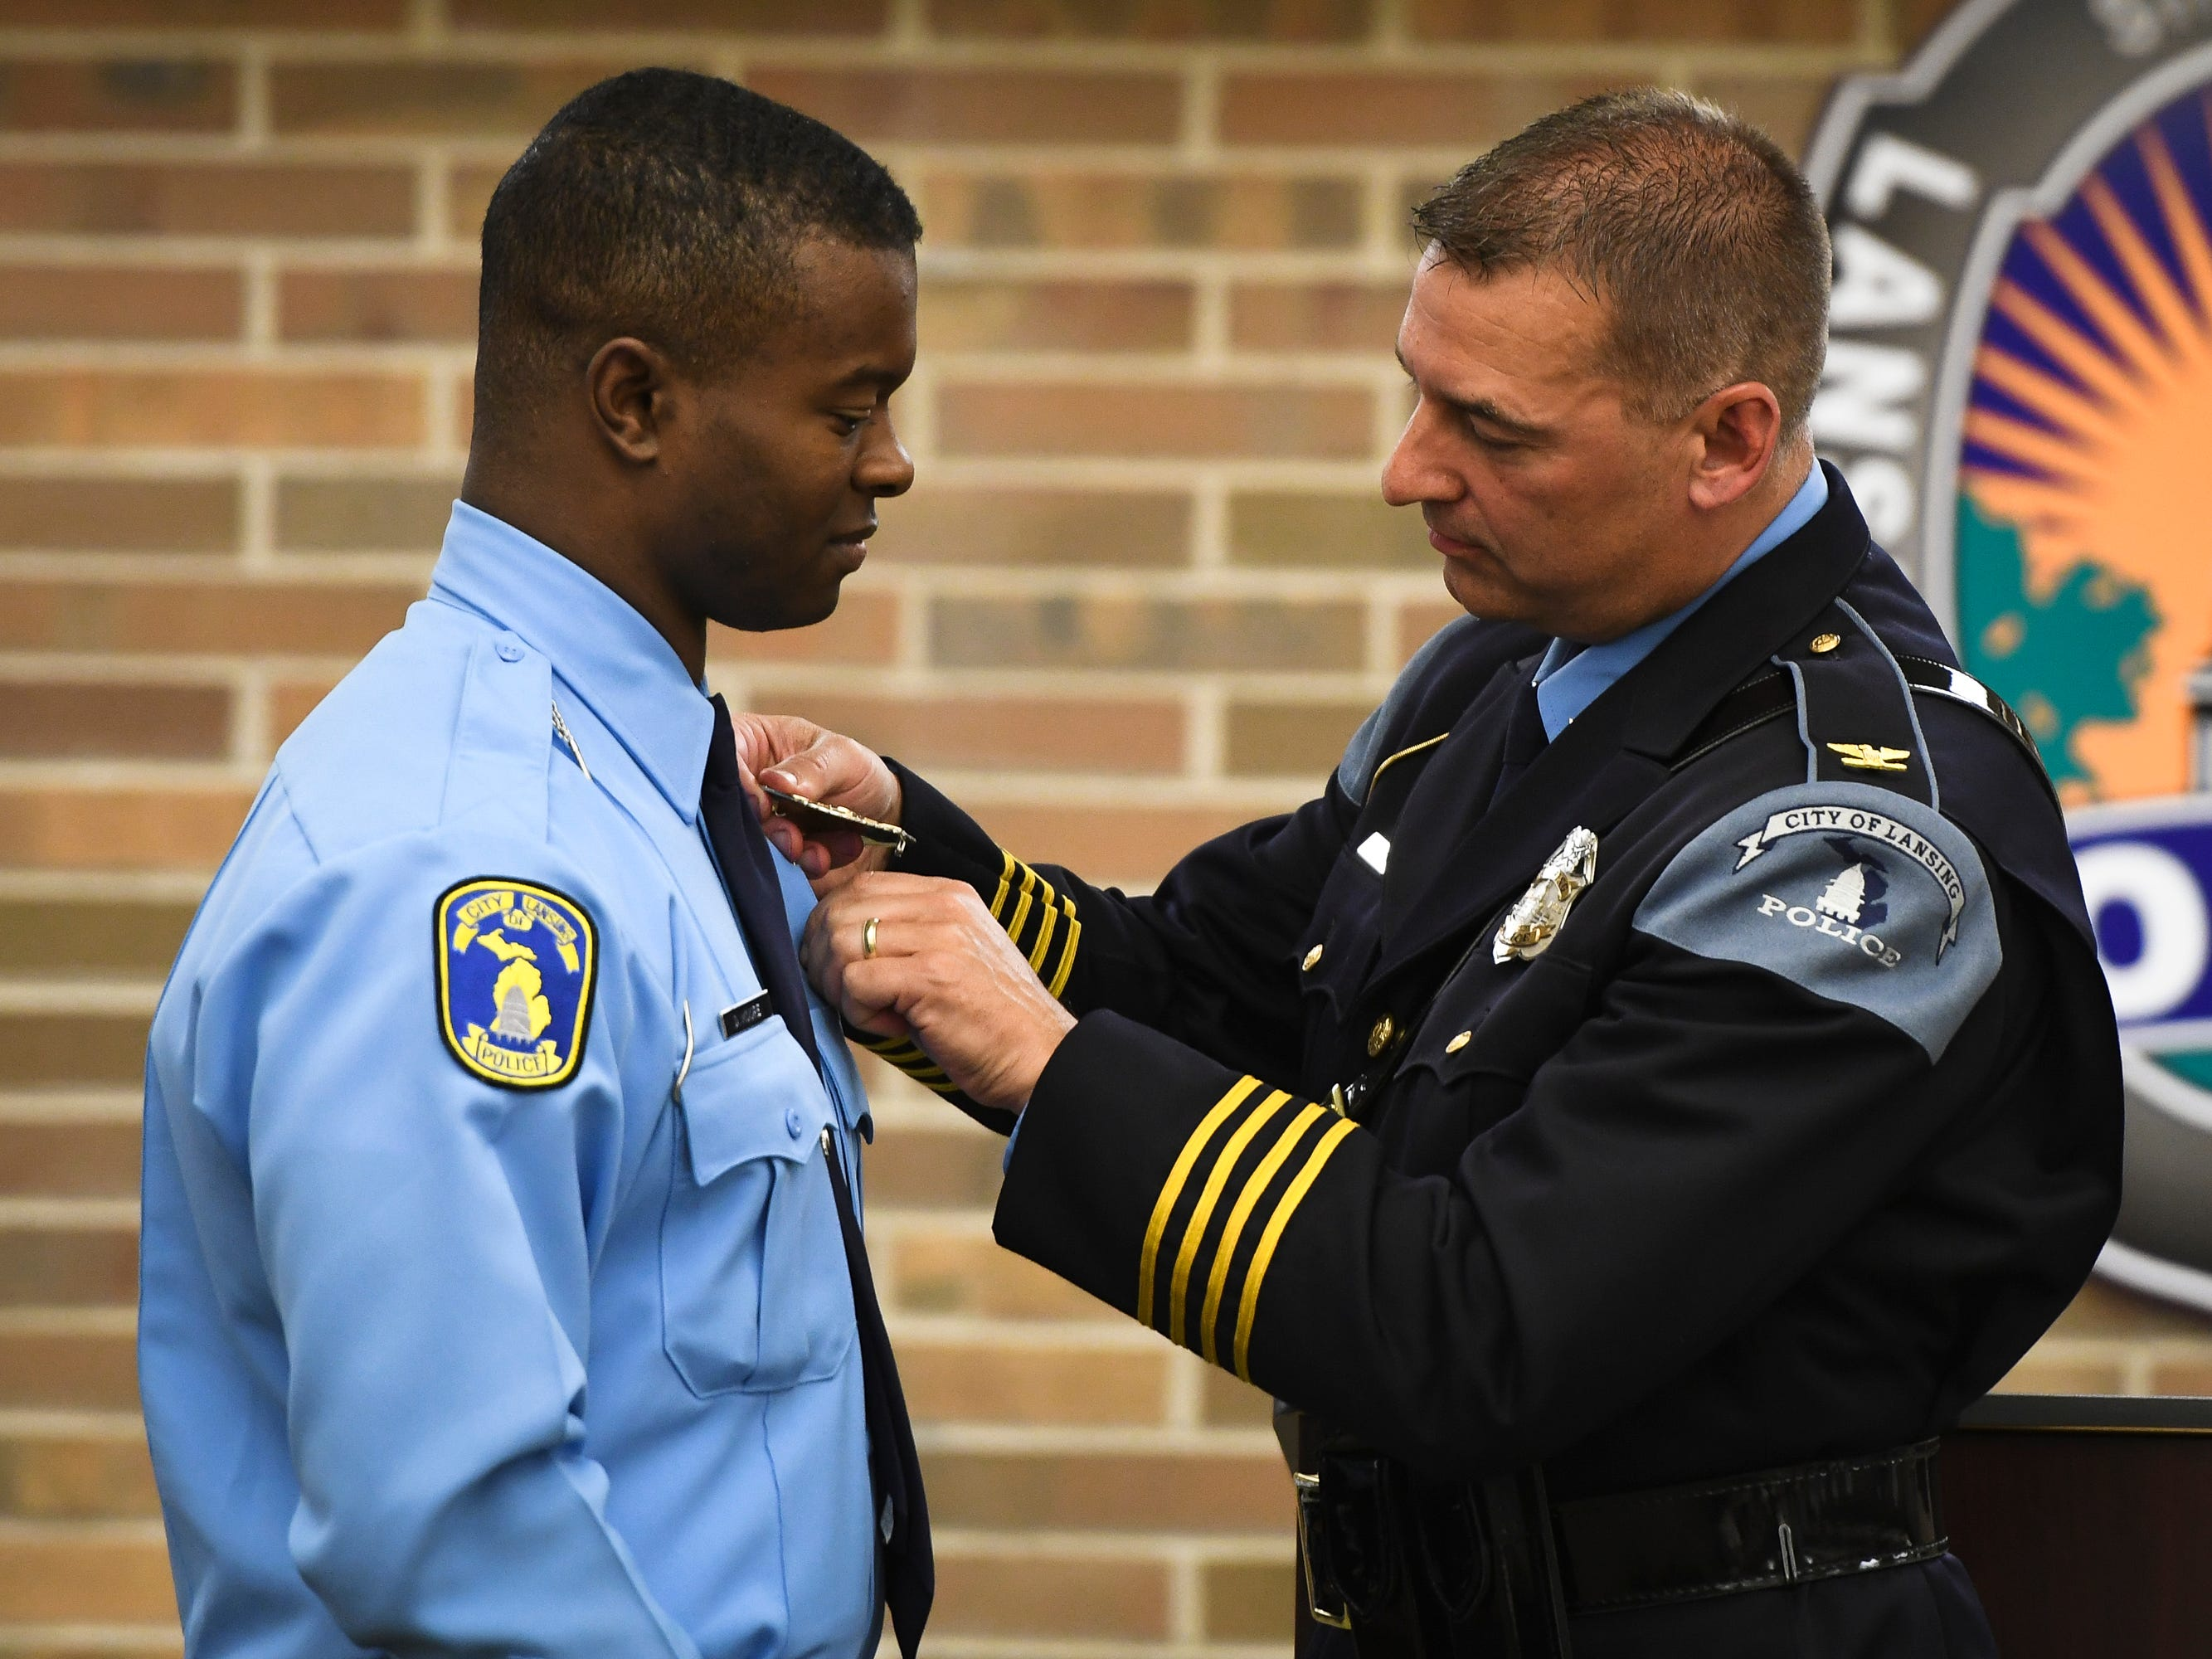 Chief Mike Yankowski, right, of the Lansing Police Department pins a badge on Donovan Moore, who was sworn in Monday, May 6, 2019, at the LPD Operations Center.